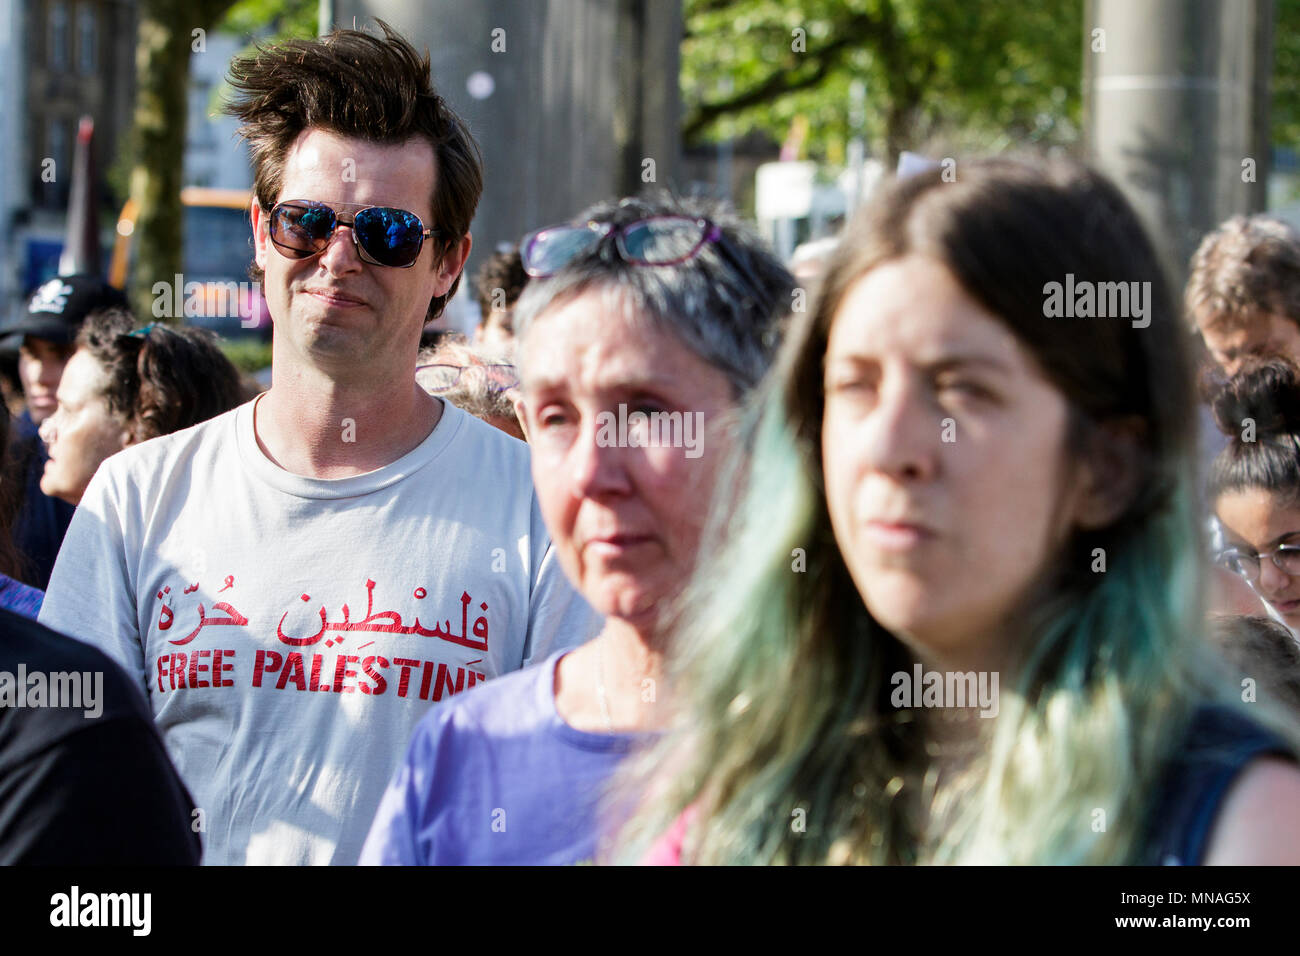 Bristol, UK. 15th May, 2018. Pro-Palestinian demonstrators are pictured as they listen to speeches ahead of a Pro-Palestinian protest march through Bristol. The protest march and rally was held so as to allow people to show their support and solidarity with the Palestinian people after 70 Years of Nakba and to protest about Israel's recent actions in Gaza - Stock Image